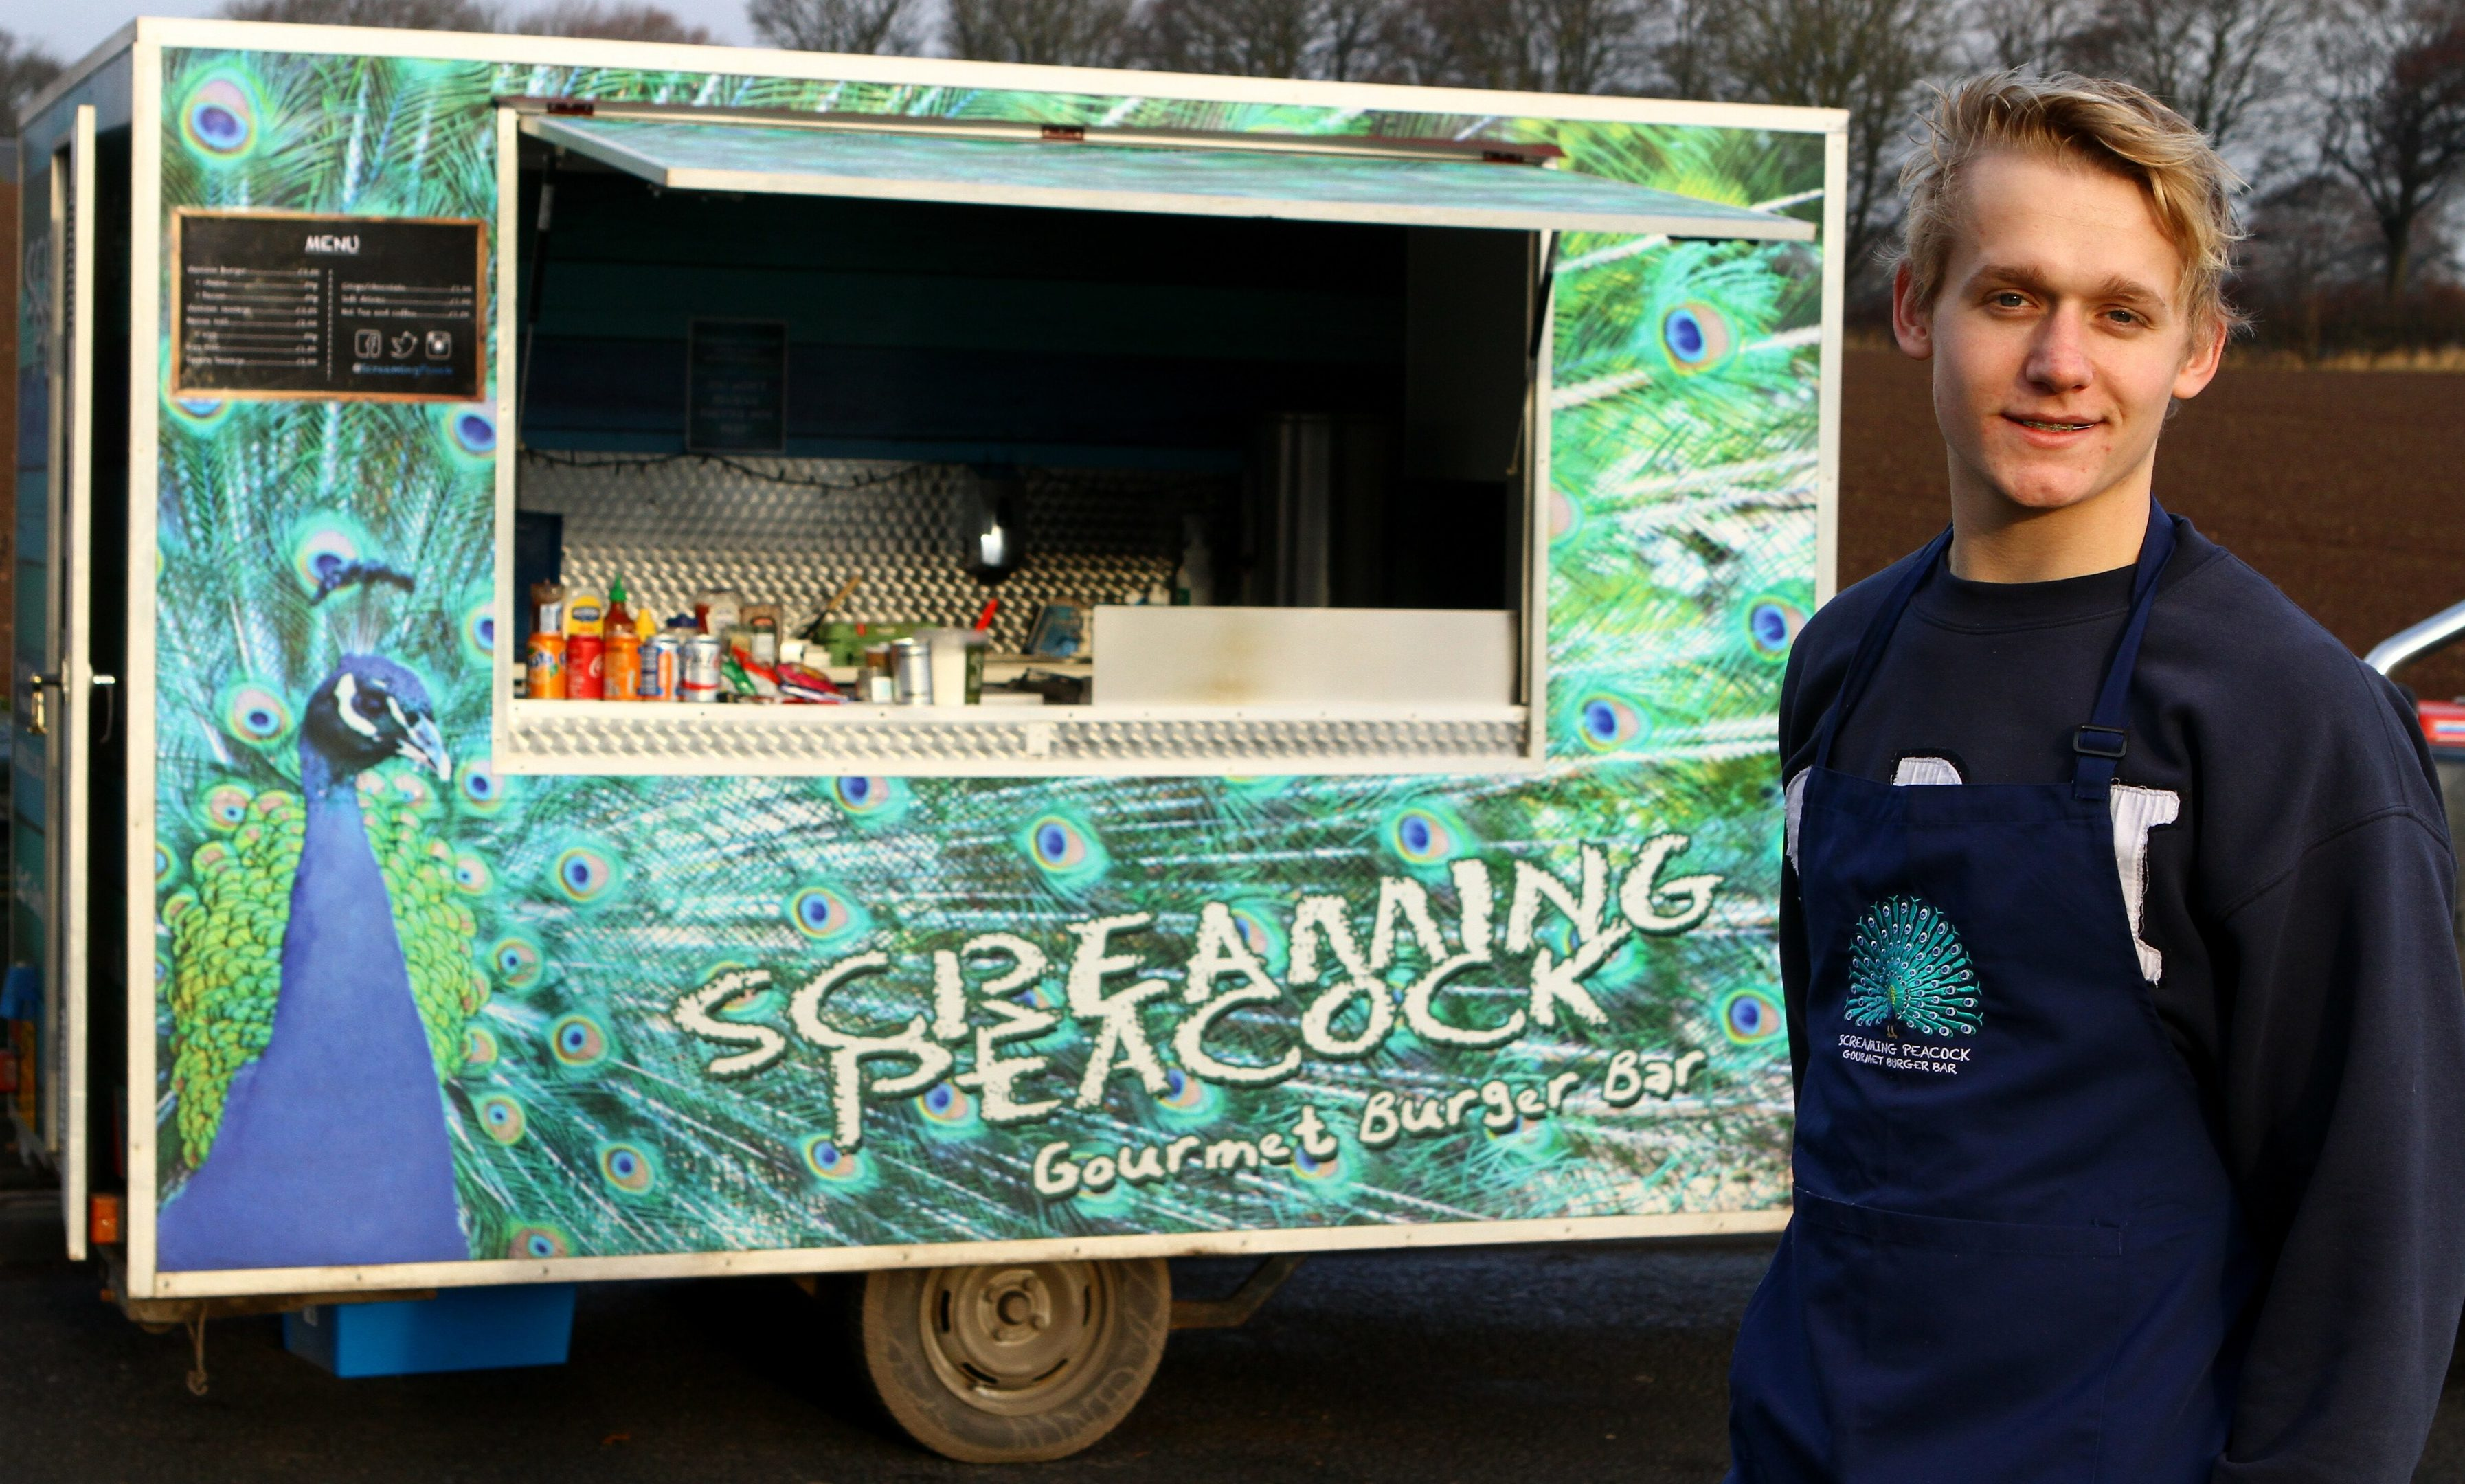 Guy Wade launched the  Screaming Peacock last summer